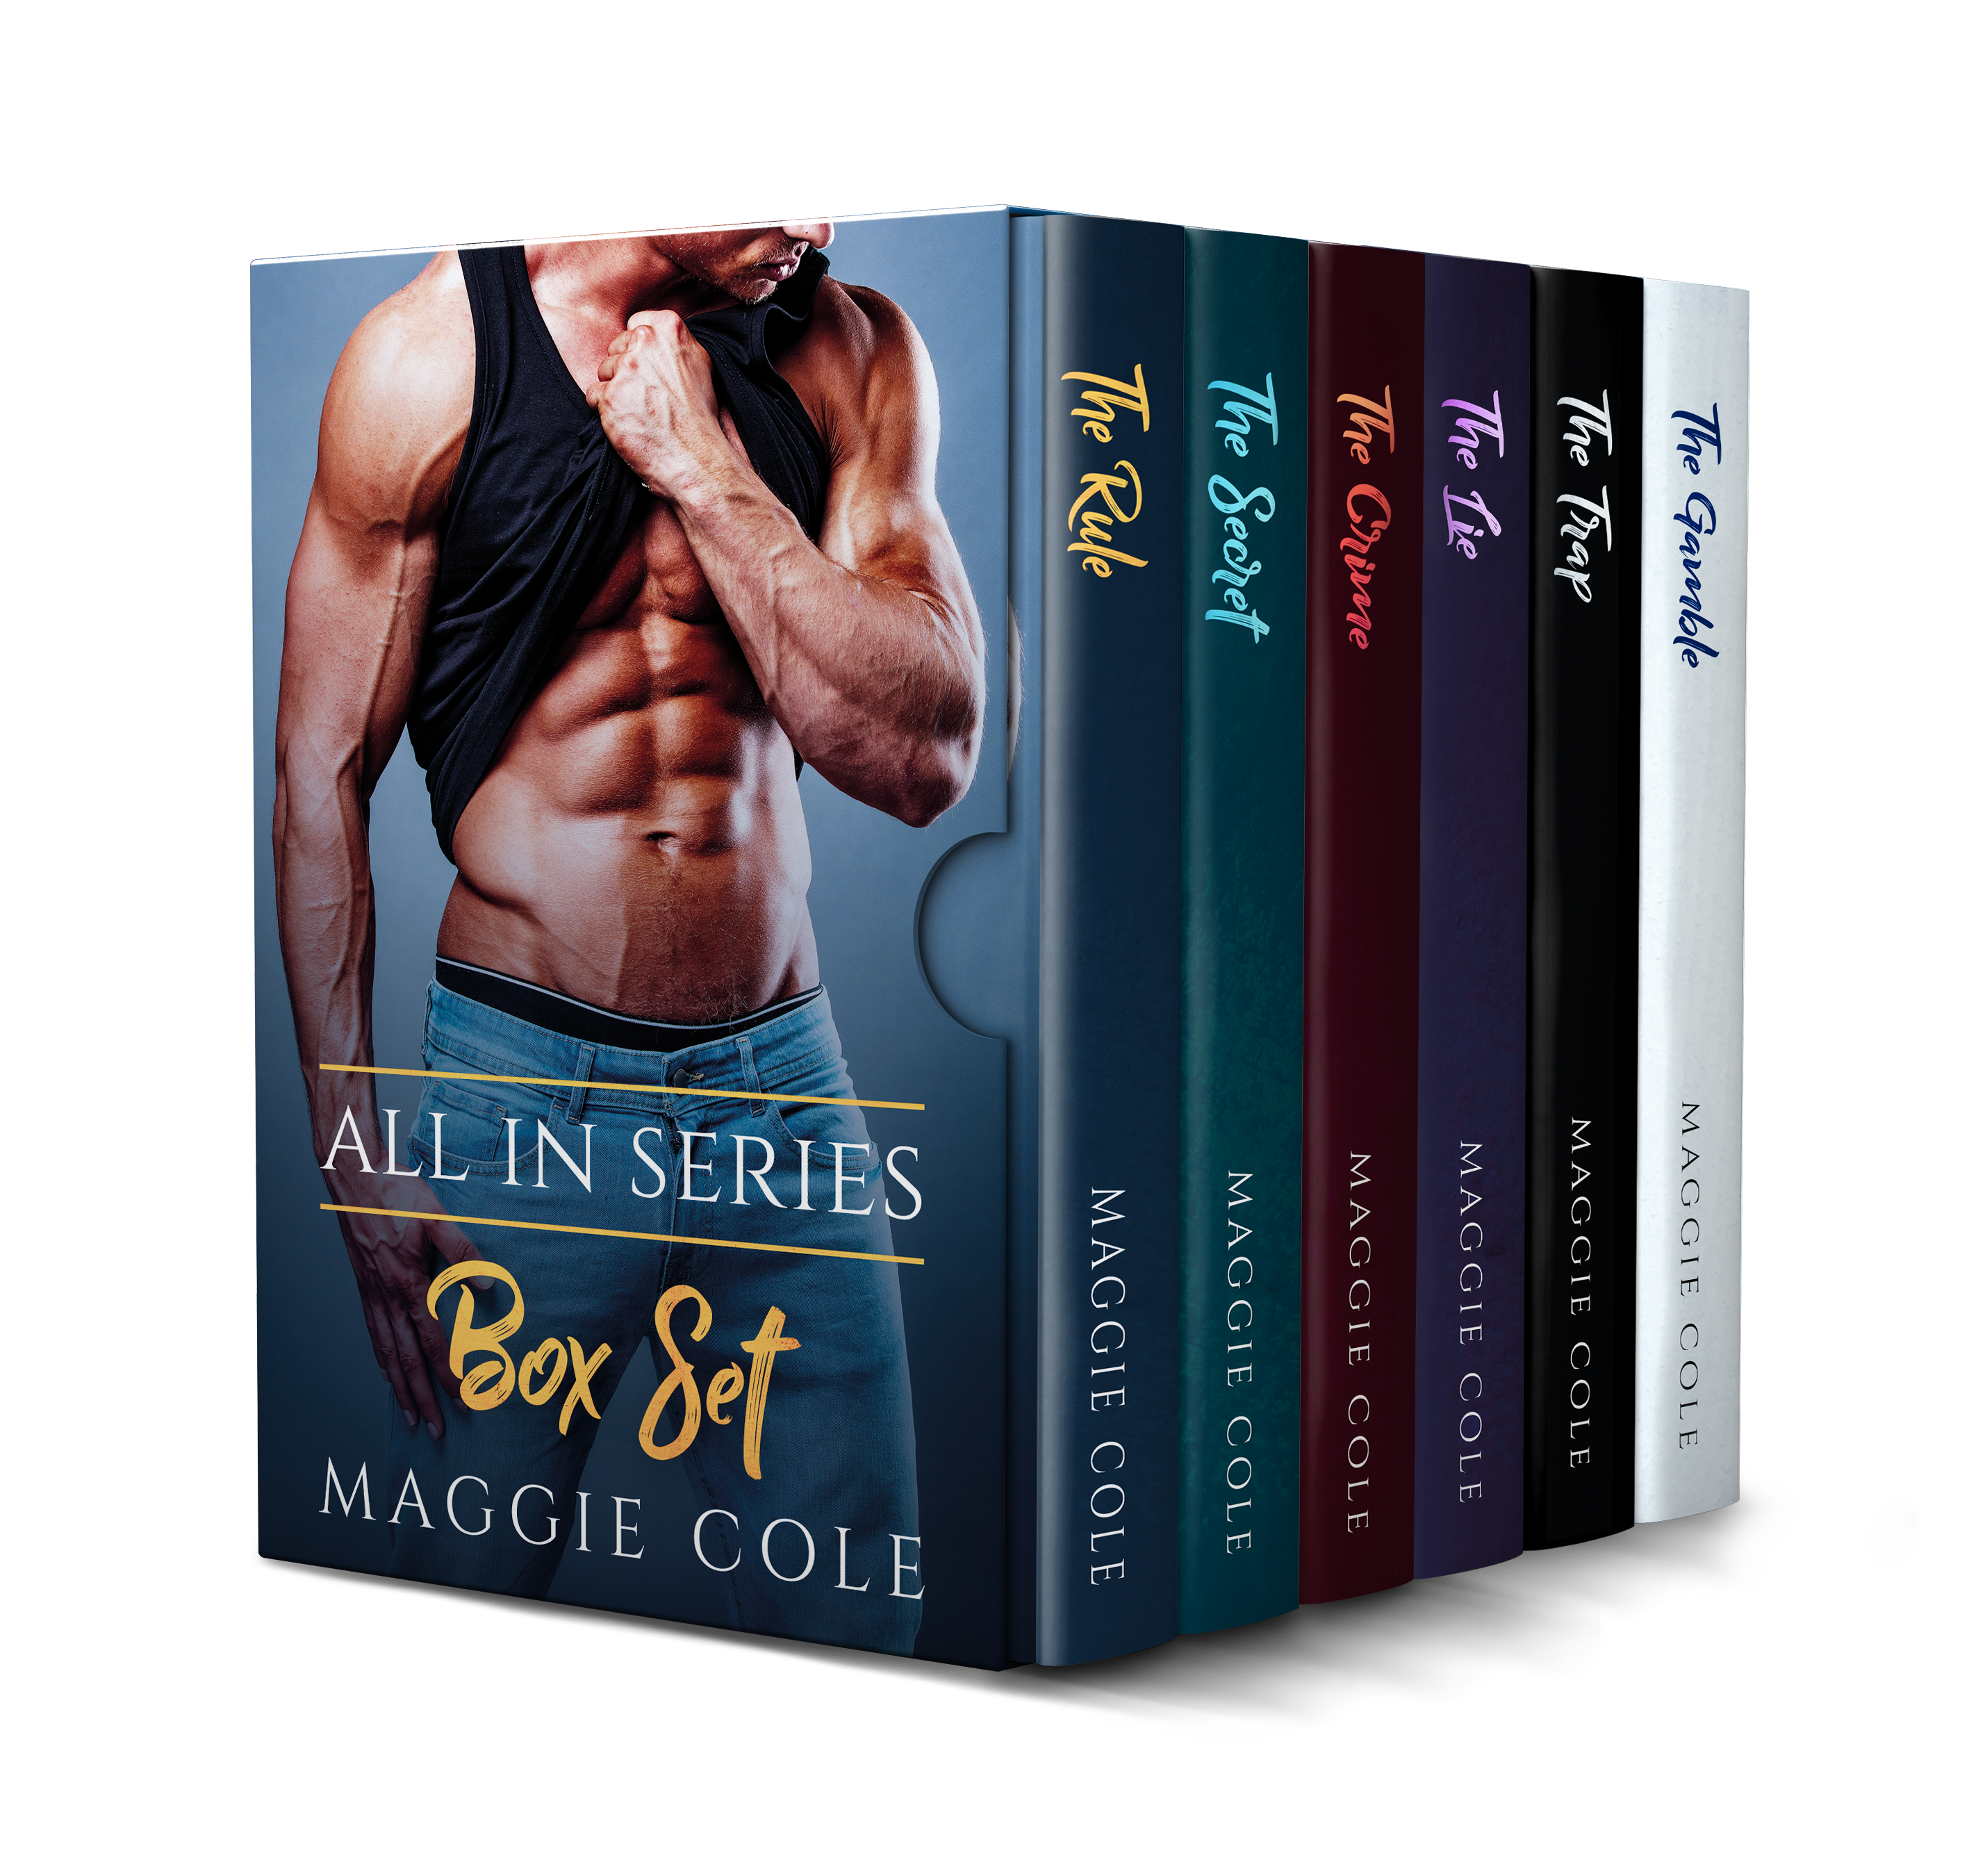 A fun, steamy new series from a new hot-selling author